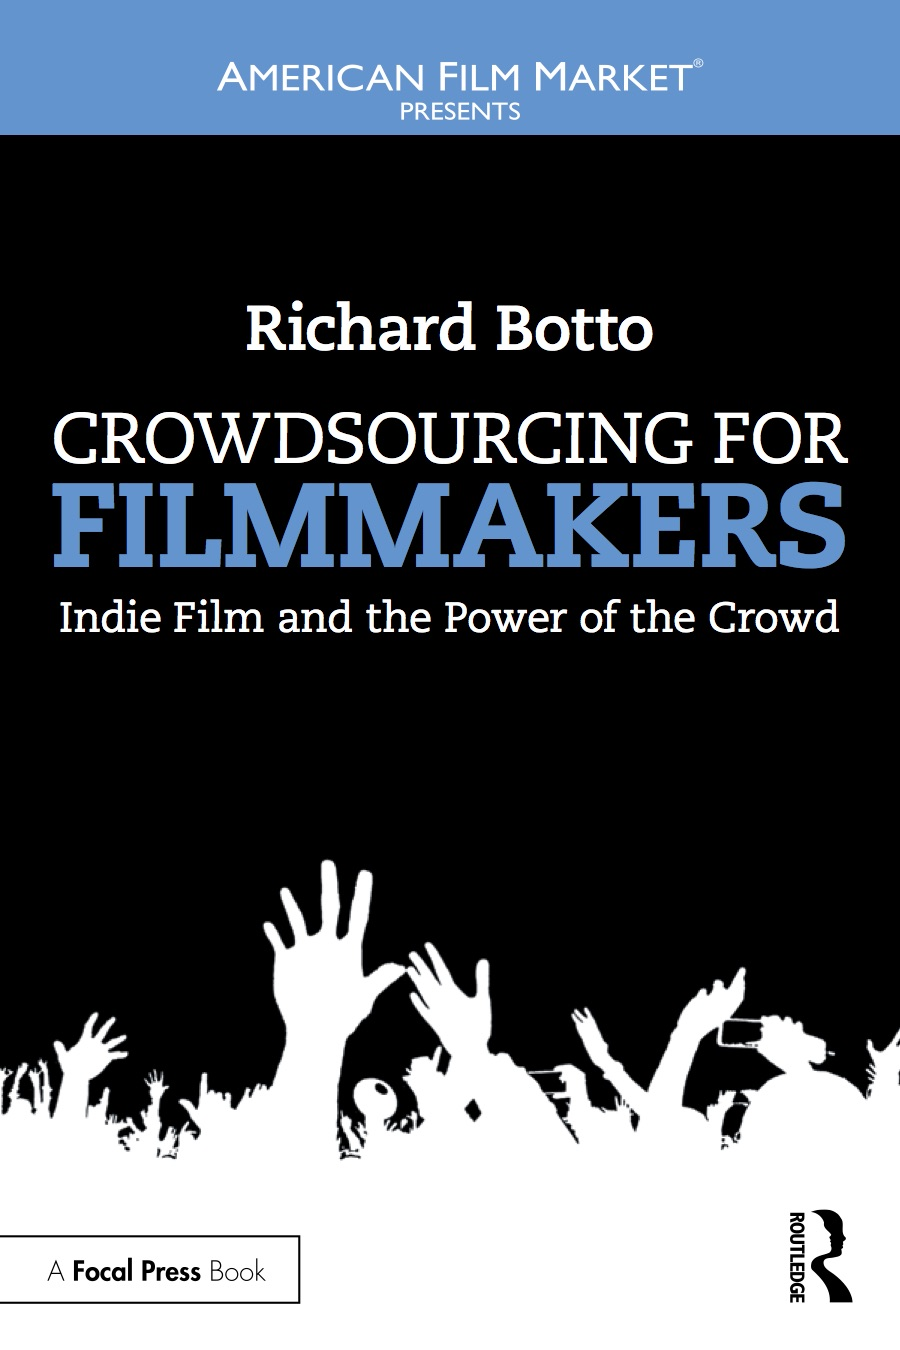 Crowdsourcing for Filmmakers - Indie Film and the Power of the Crowd,written by Richard Botto, CEO and Founder of Stage32.com |GET YOUR COPY ON AMAZON!